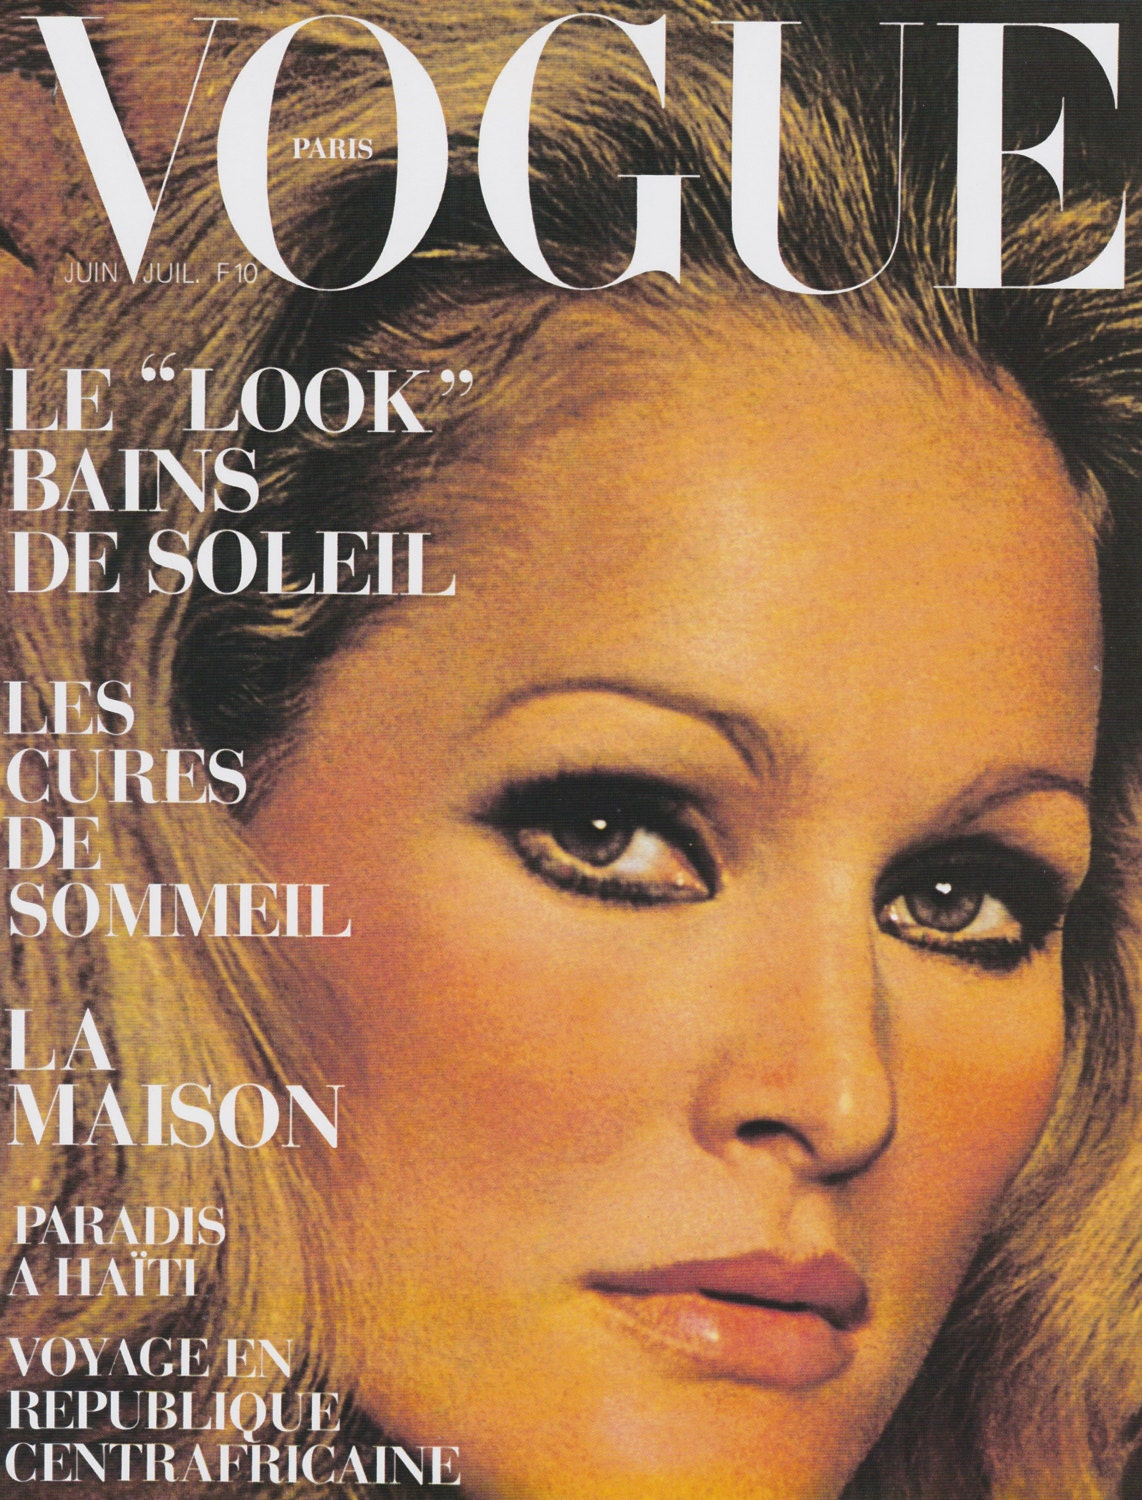 Vogue French Magazine Subscription: Vintage French Vogue Cover Poster Print, Ursula Andress